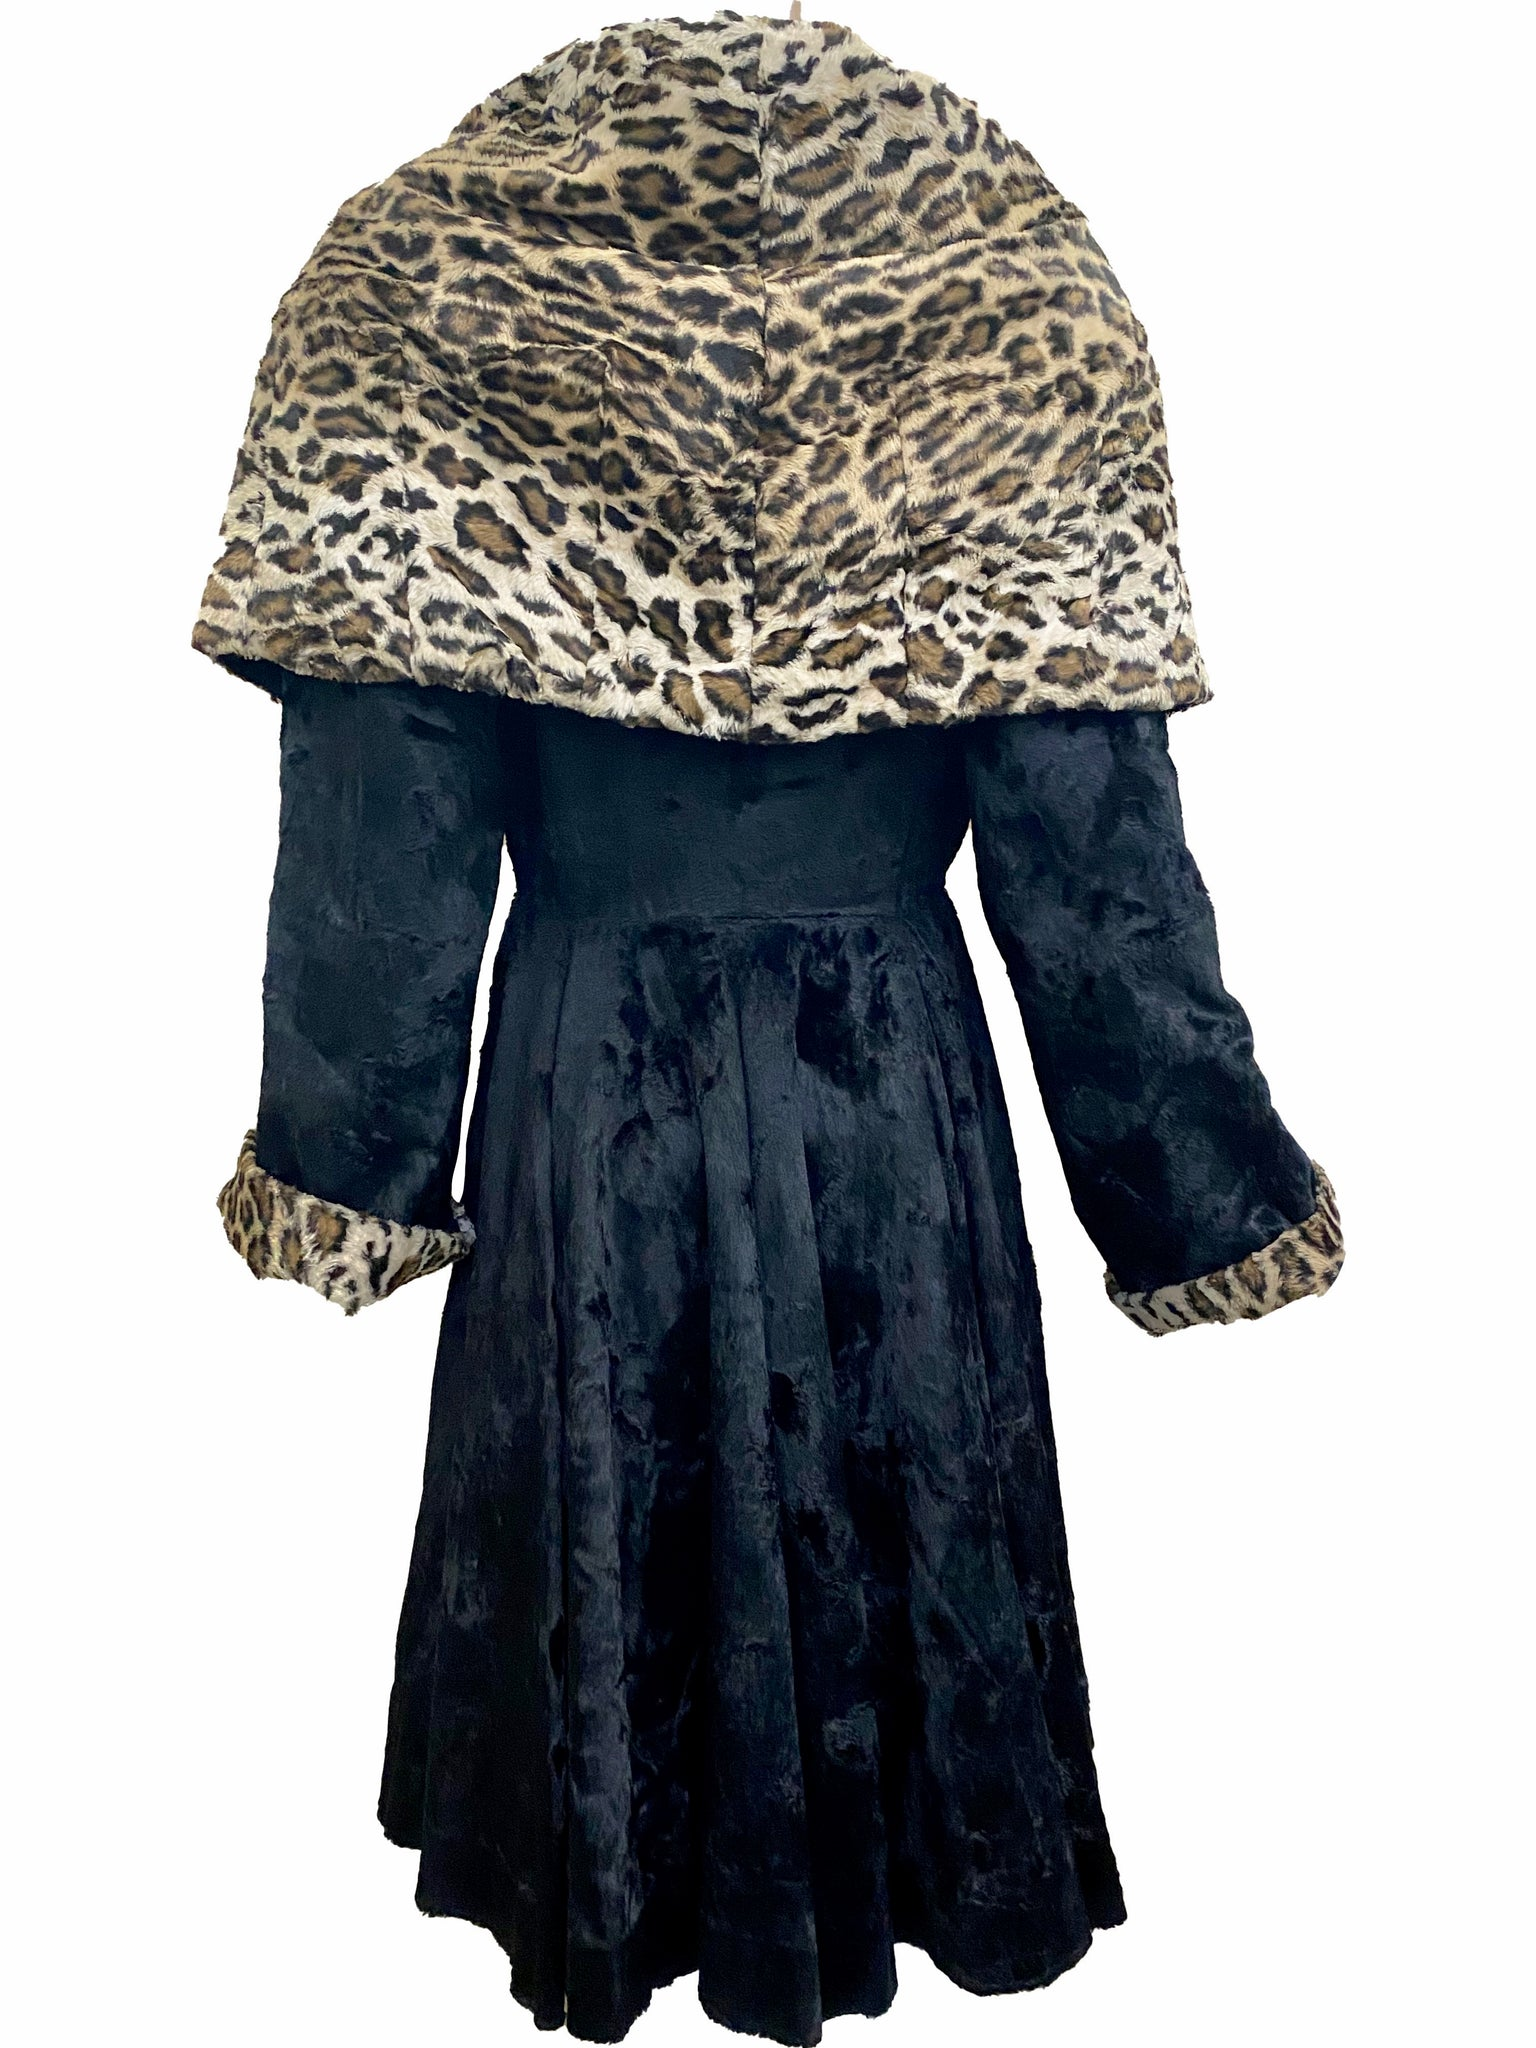 Norma Kamali 1985 Black and Faux Leopard Print Coat  BACK 3 of 6